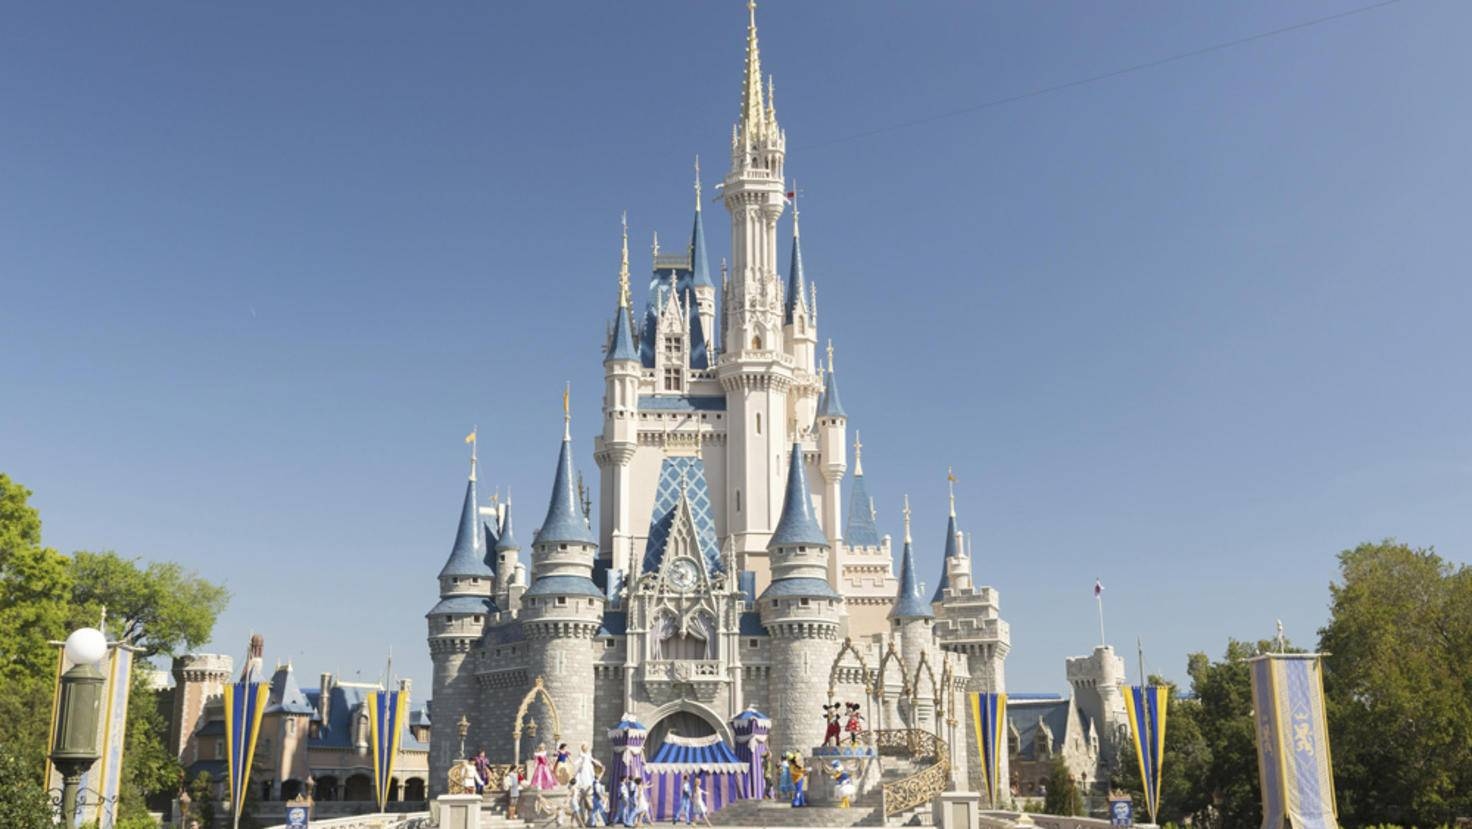 Walt Disney World Florida-picture alliance-imageBROKER-108661762